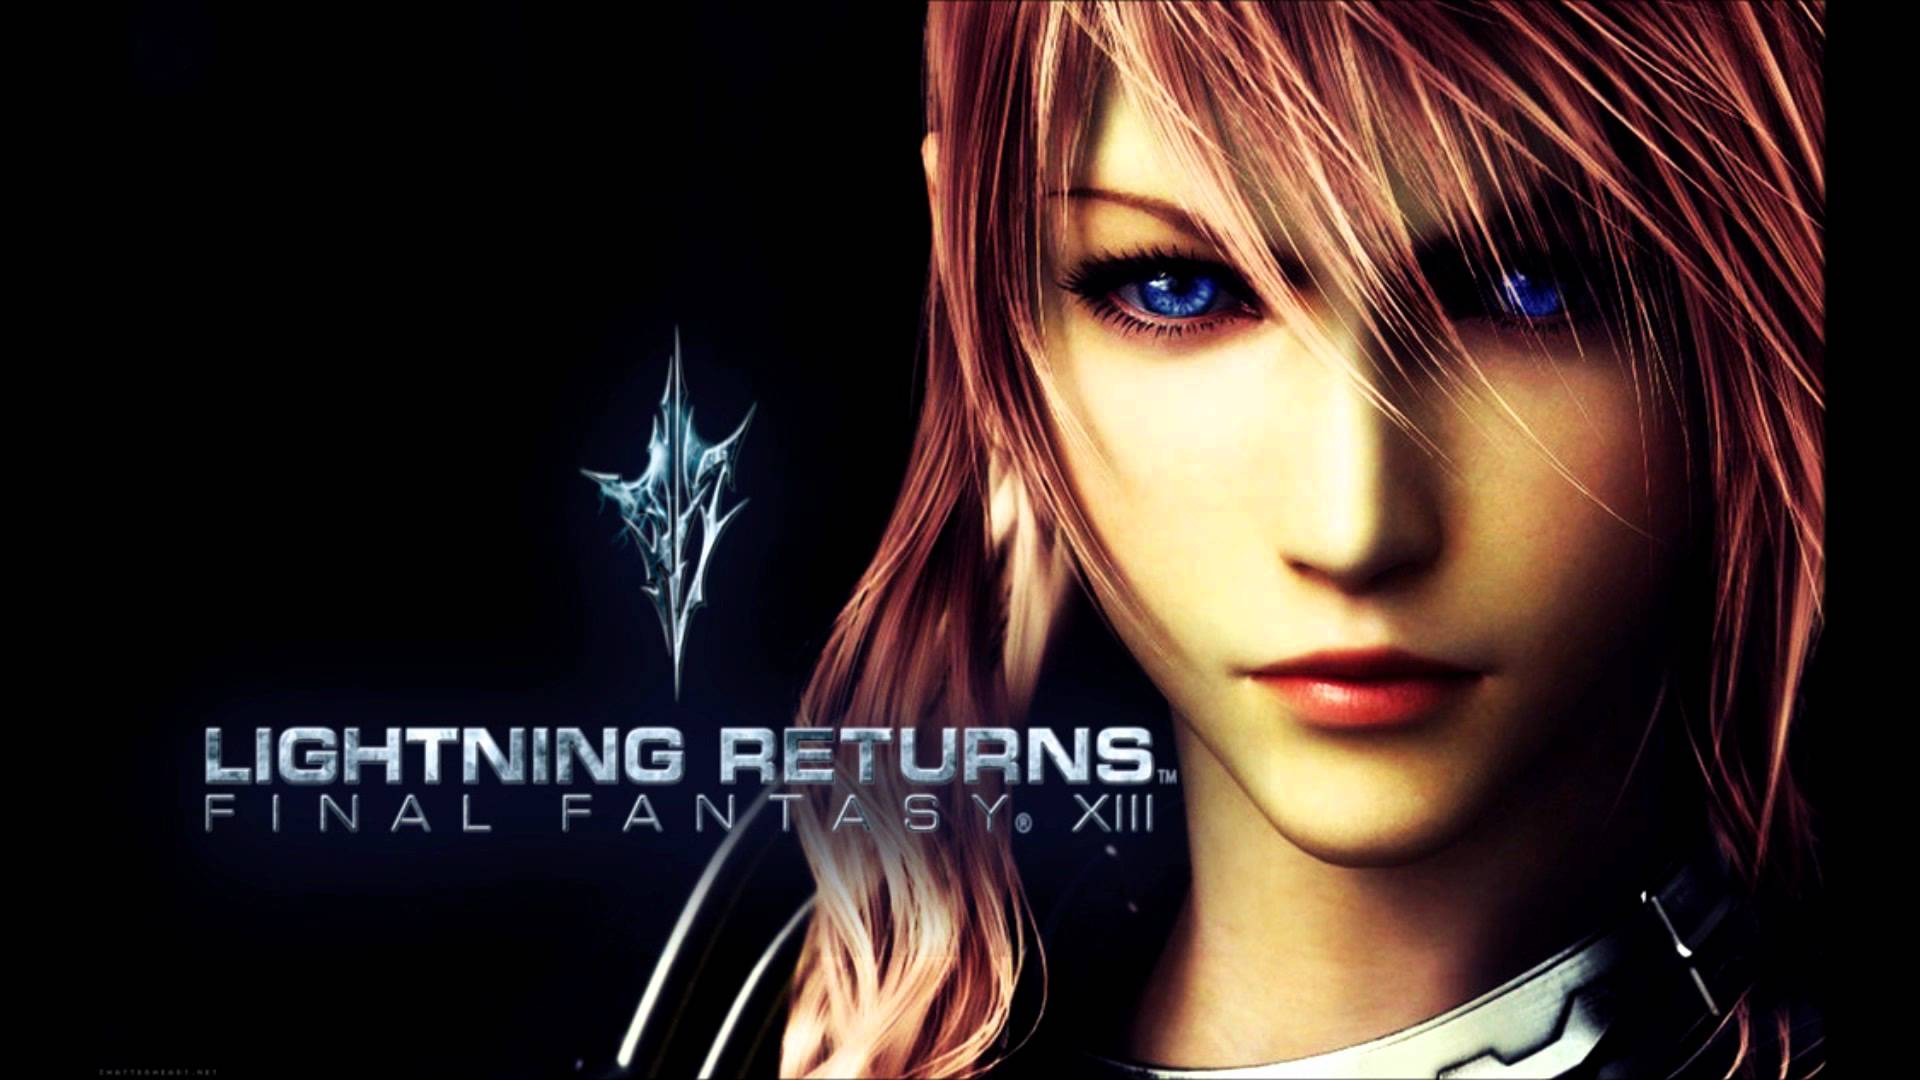 Lightning Returns Final Fantasy Xiii Wallpapers Wallpaper Cave